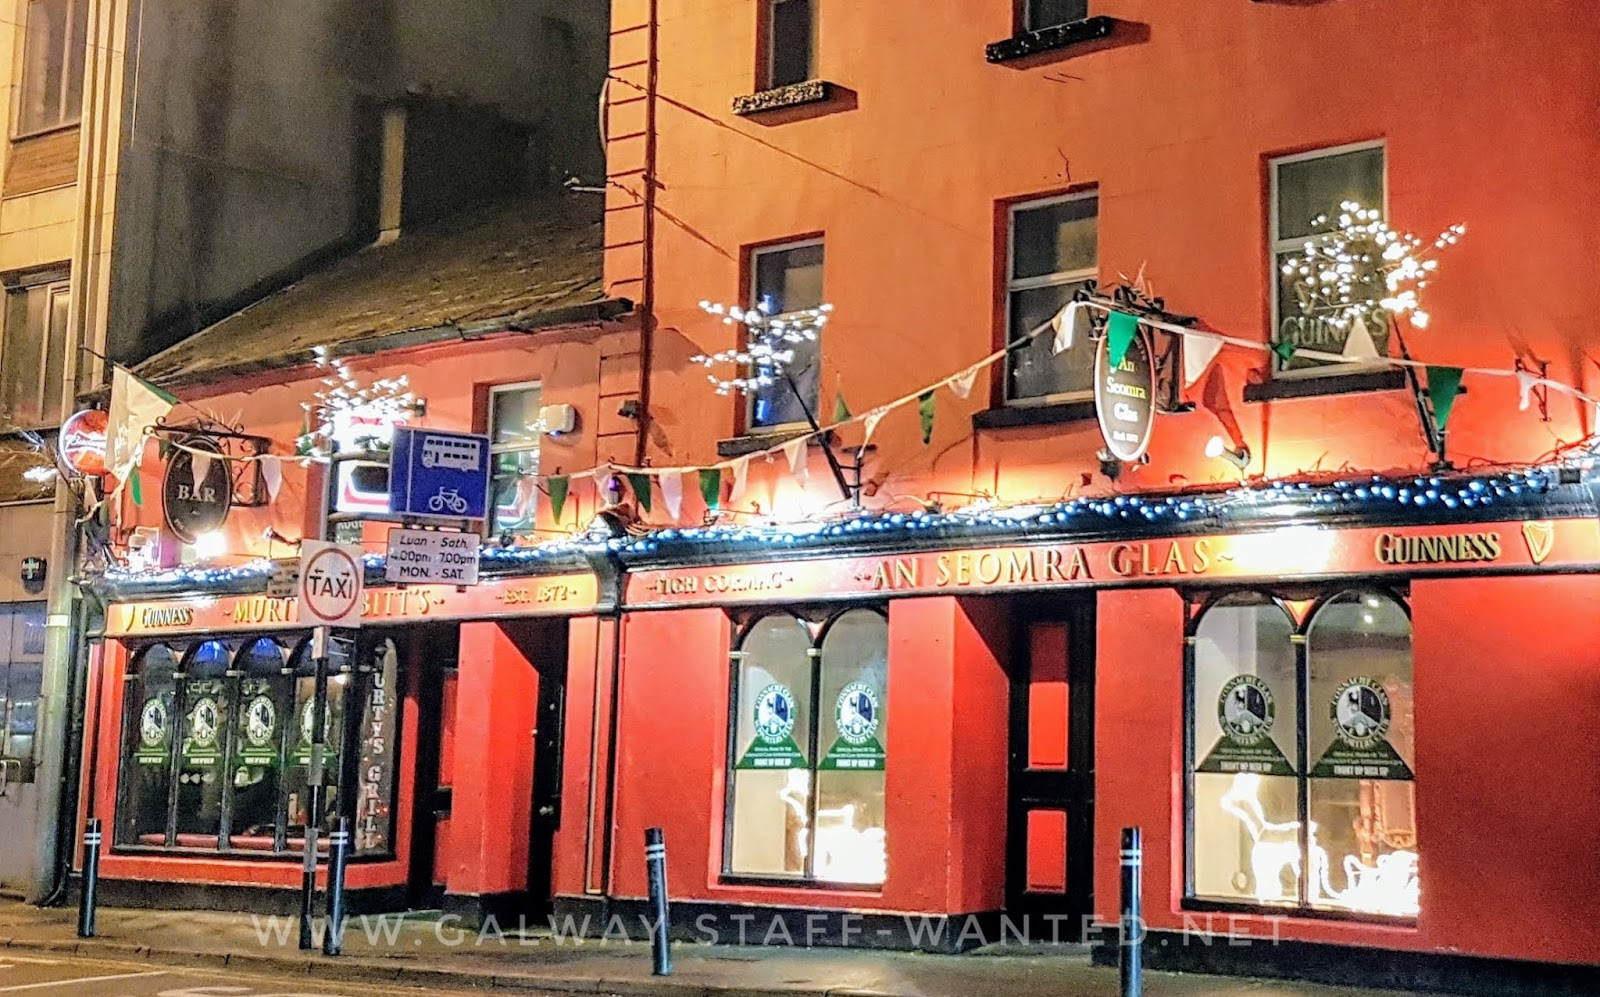 Bright red pub, extending over two or more buildings in central Galway city:   Tigh Cormac - An Seomra Glas ie The Green Room